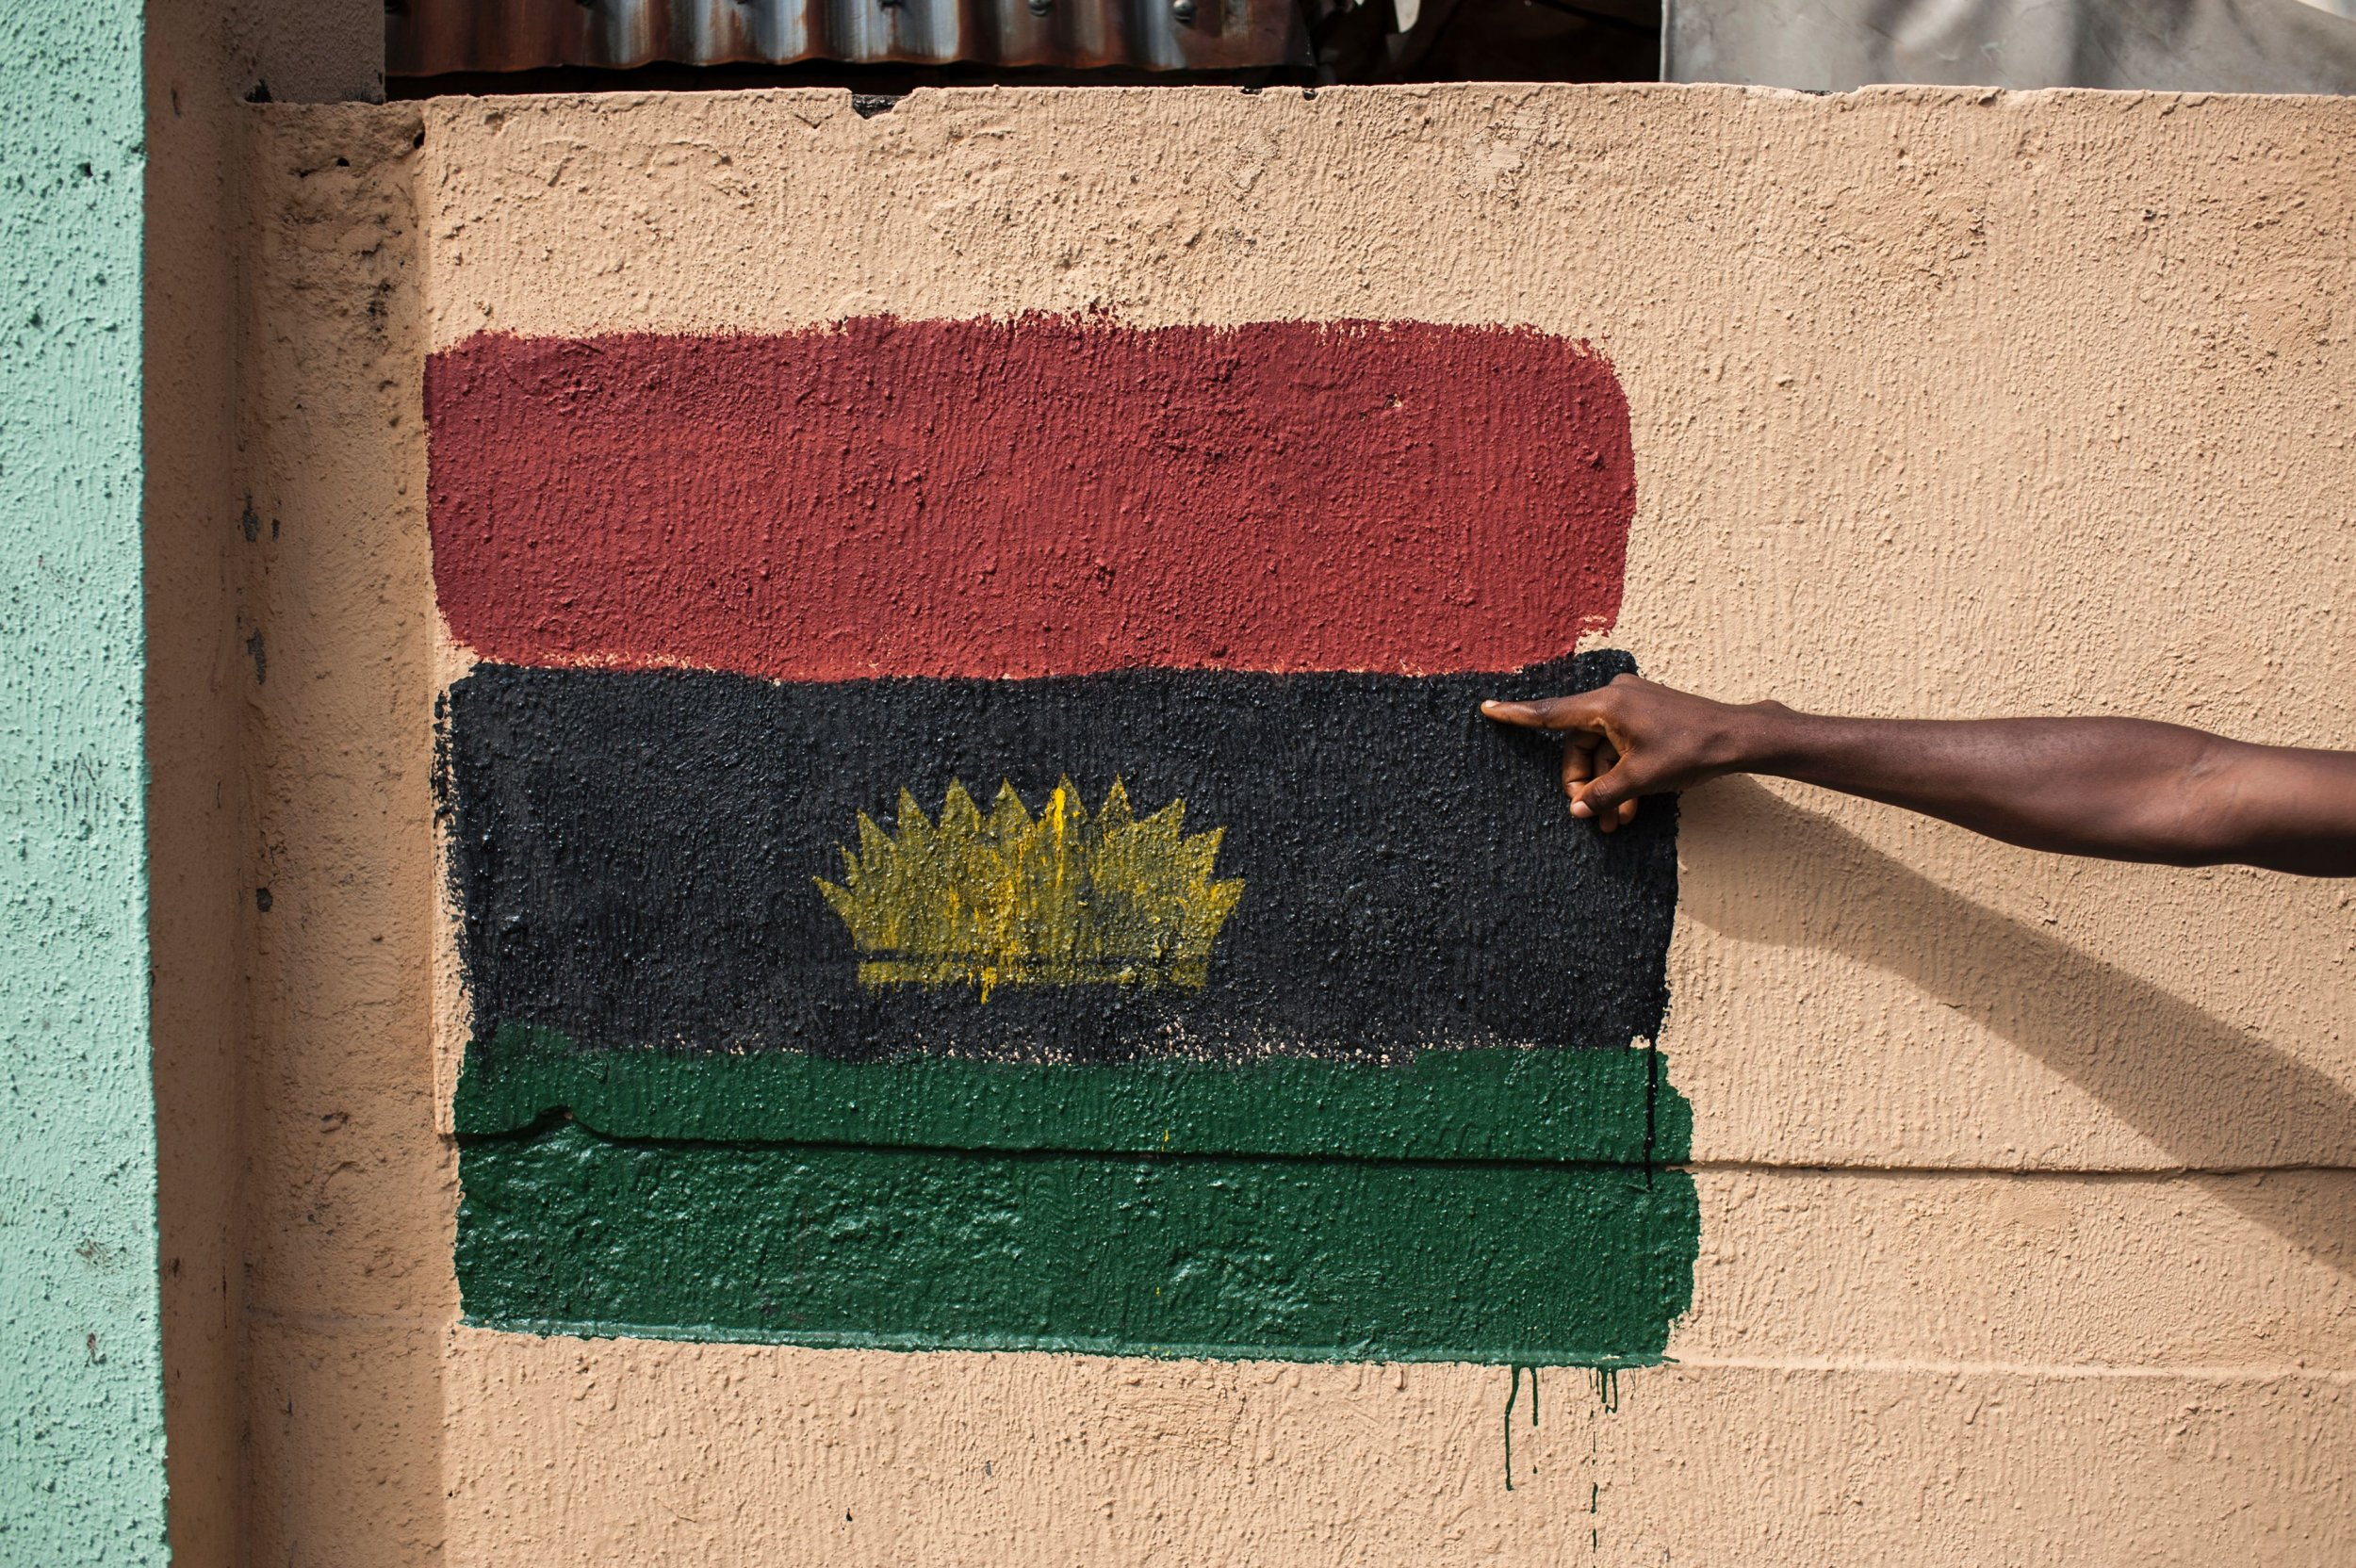 Biafra nigerian governors condemn call for ethnic cleansing of north thecheapjerseys Images